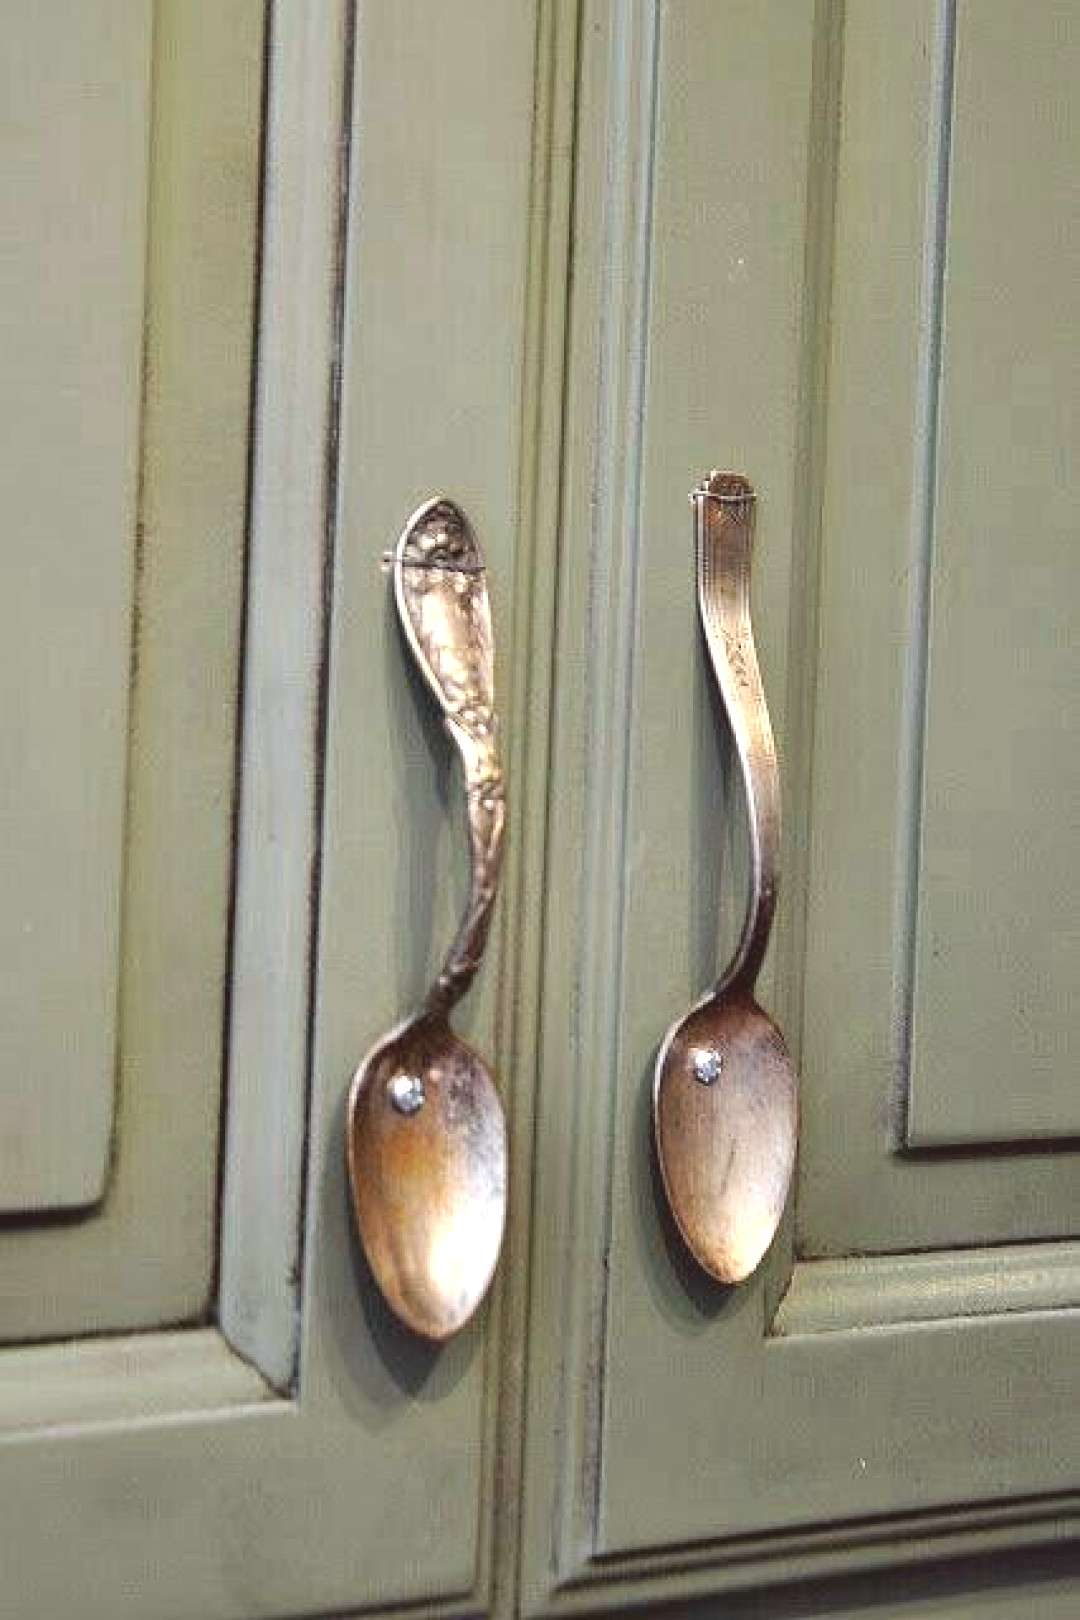 Use for vintage spoons on kitchen cabinets !, on for kitchen cabinets ... -